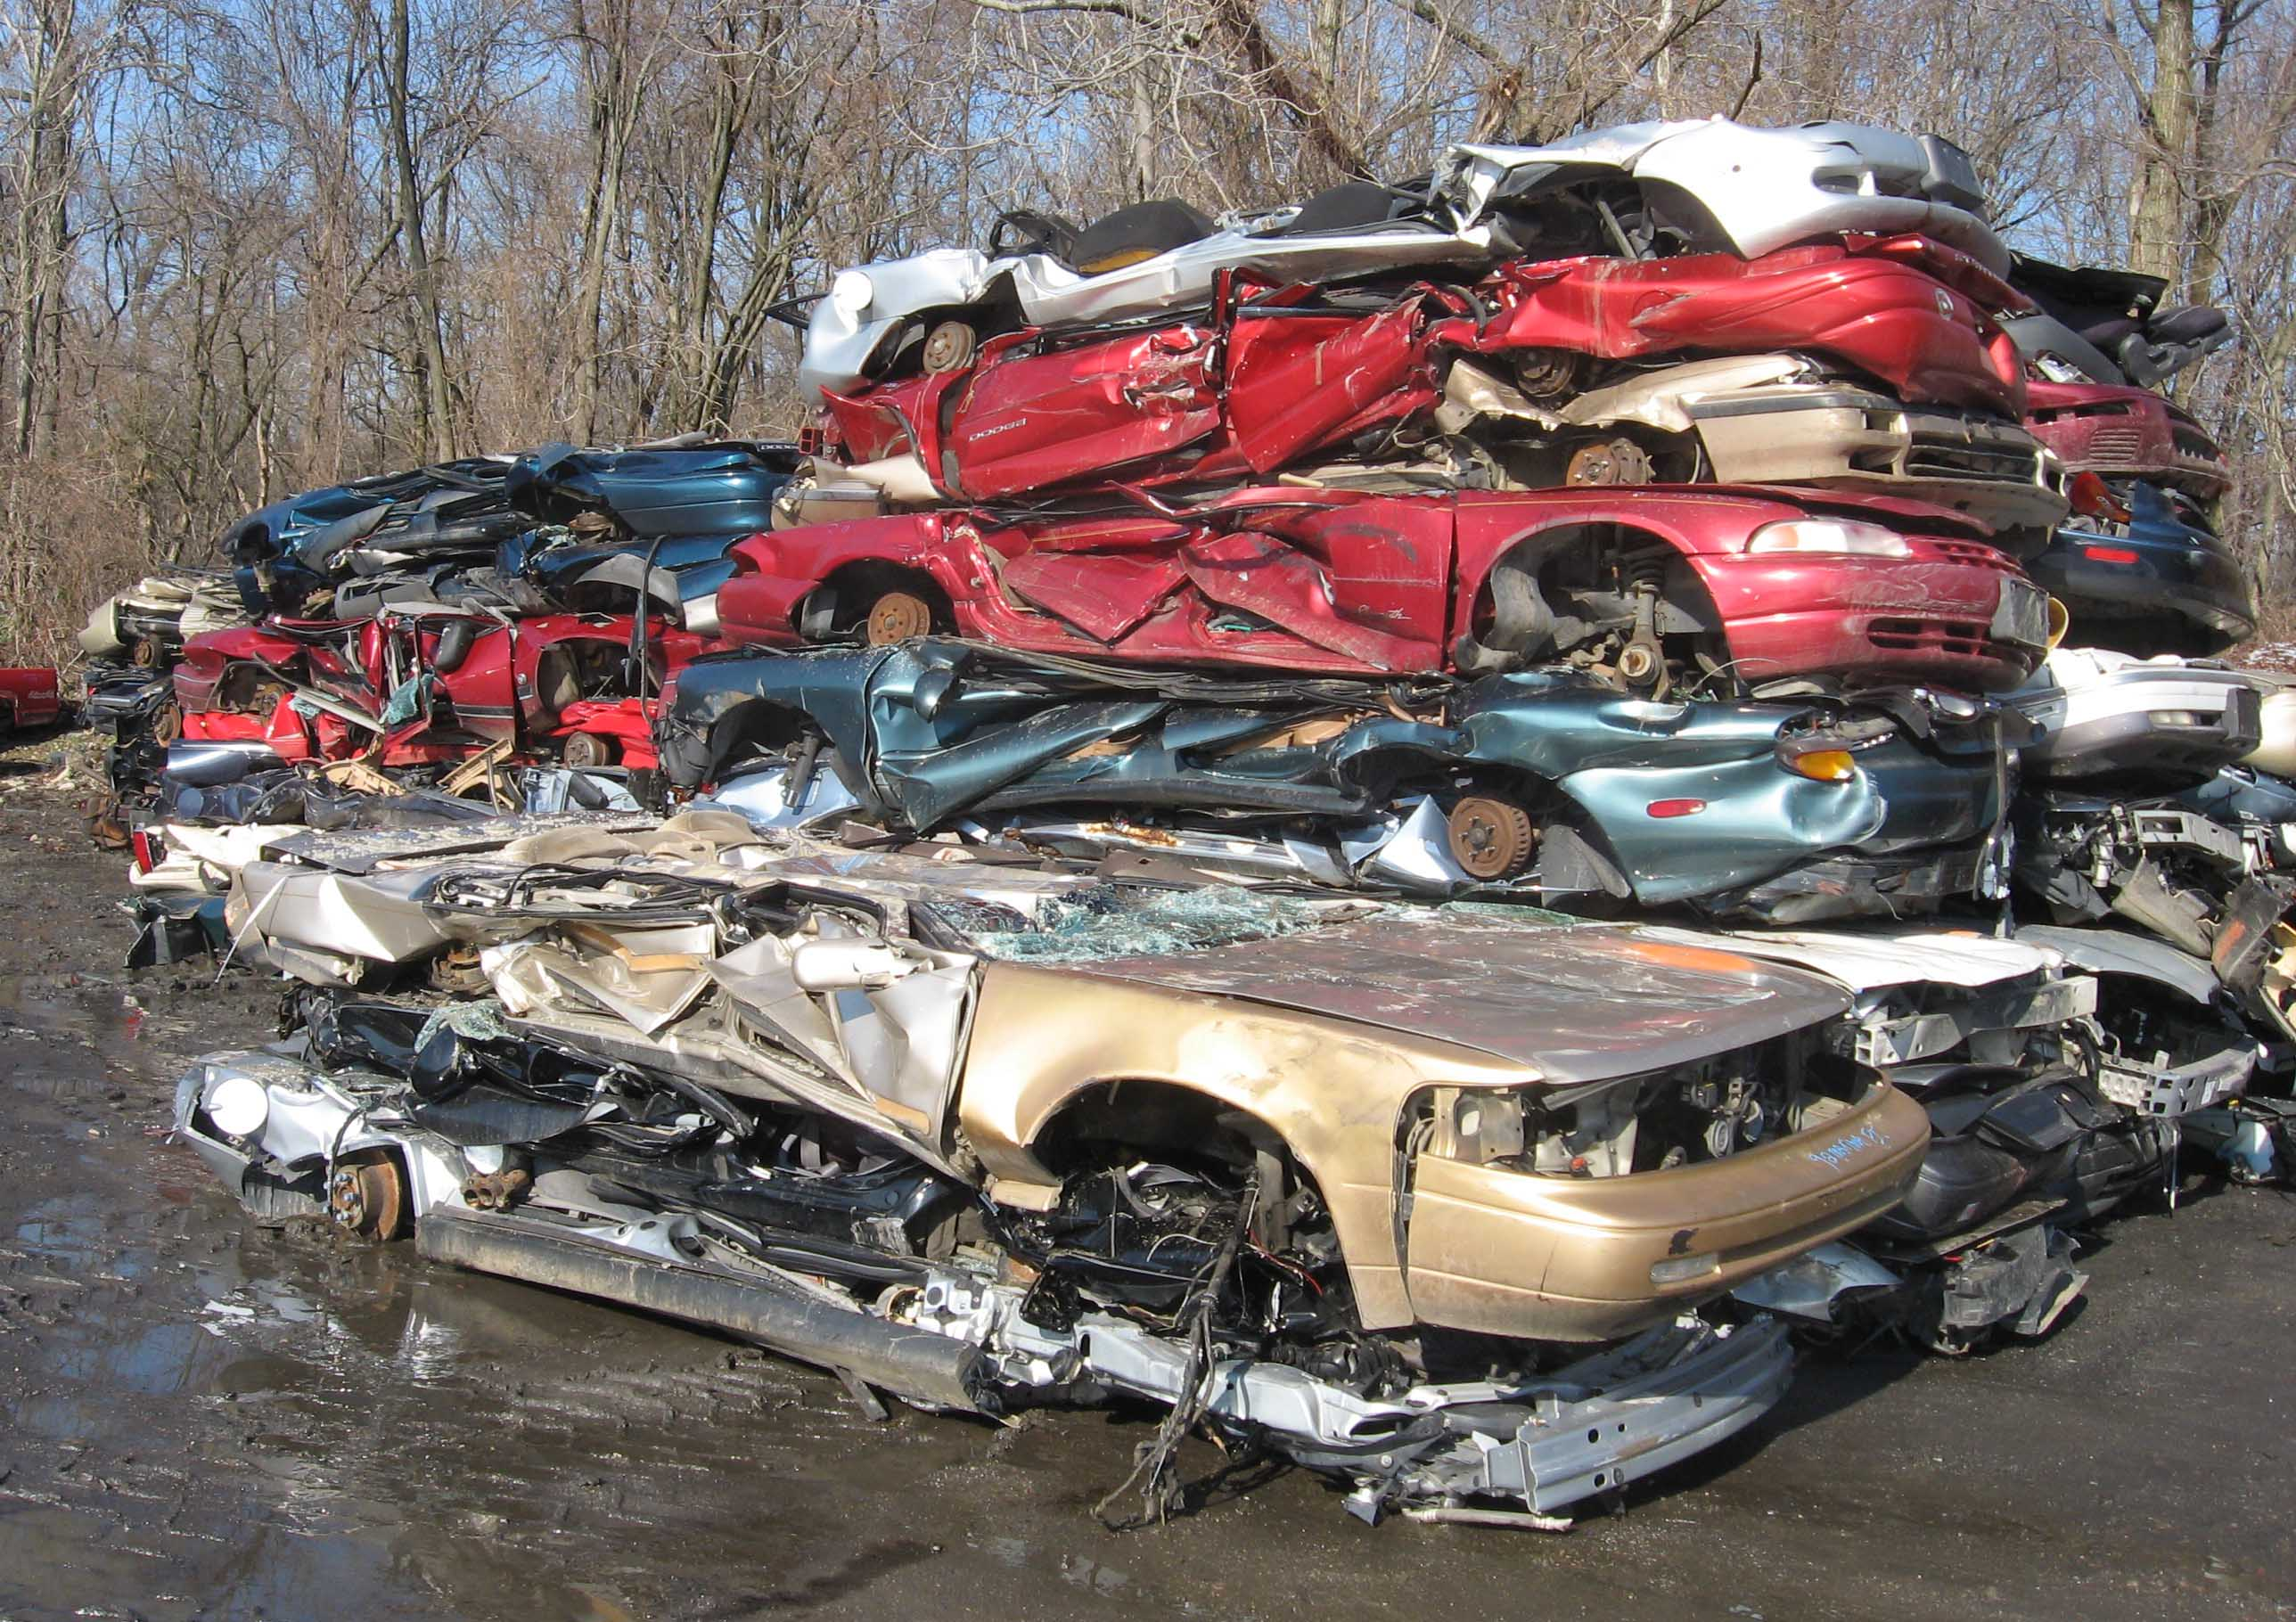 File:Auto scrapyard 1.jpg - Wikimedia Commons